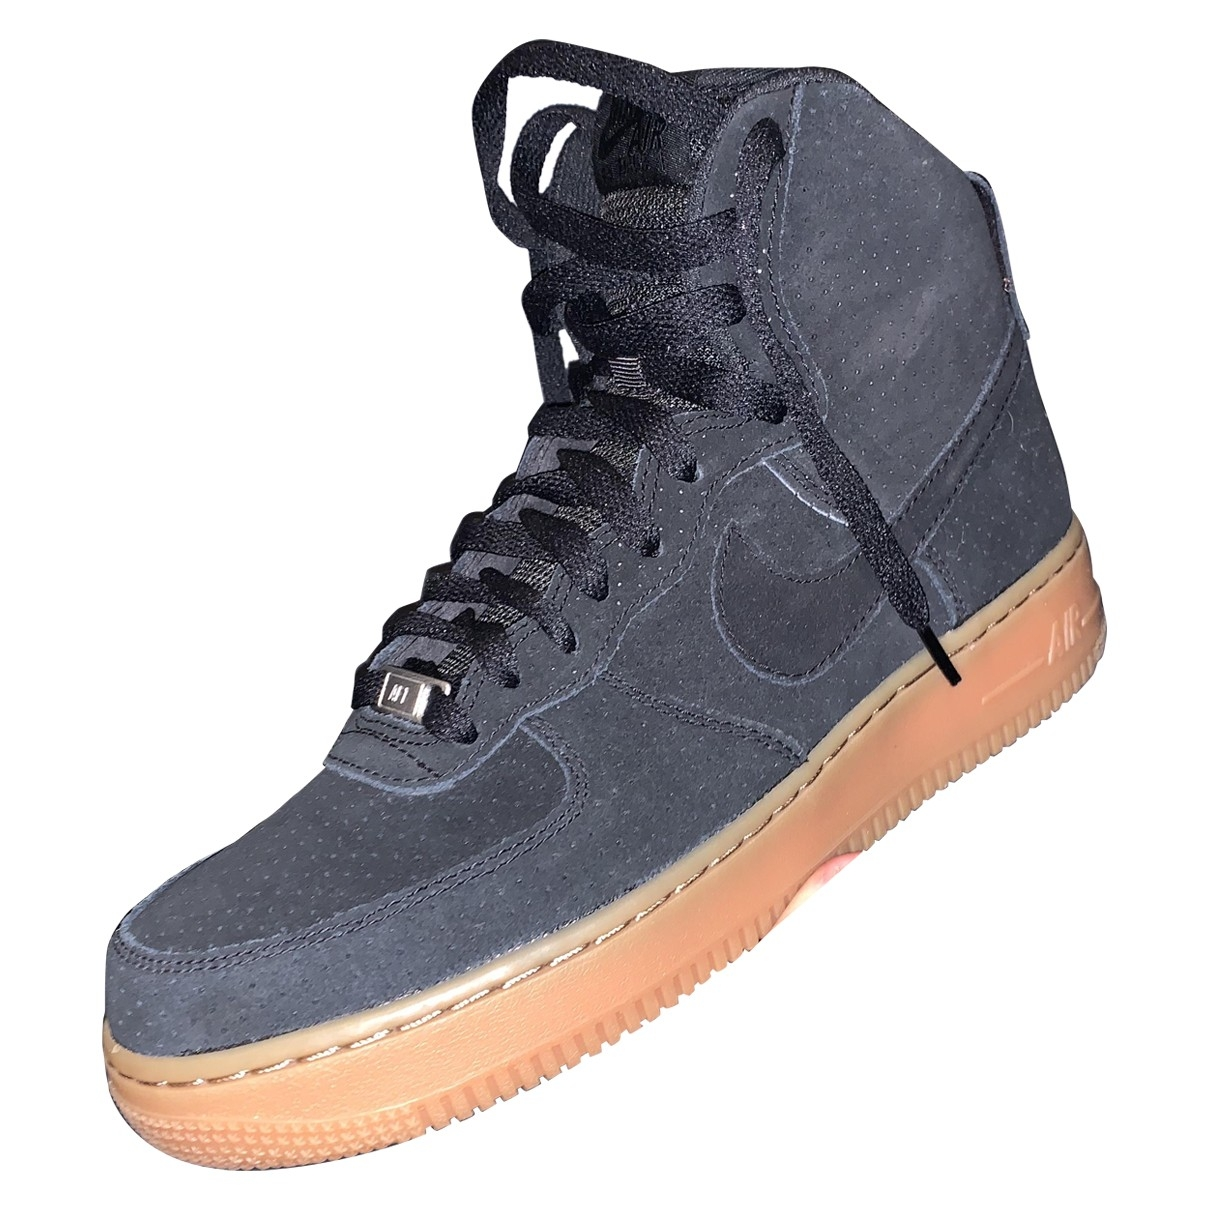 Nike Air Force 1 Black Suede Trainers for Men 42 EU